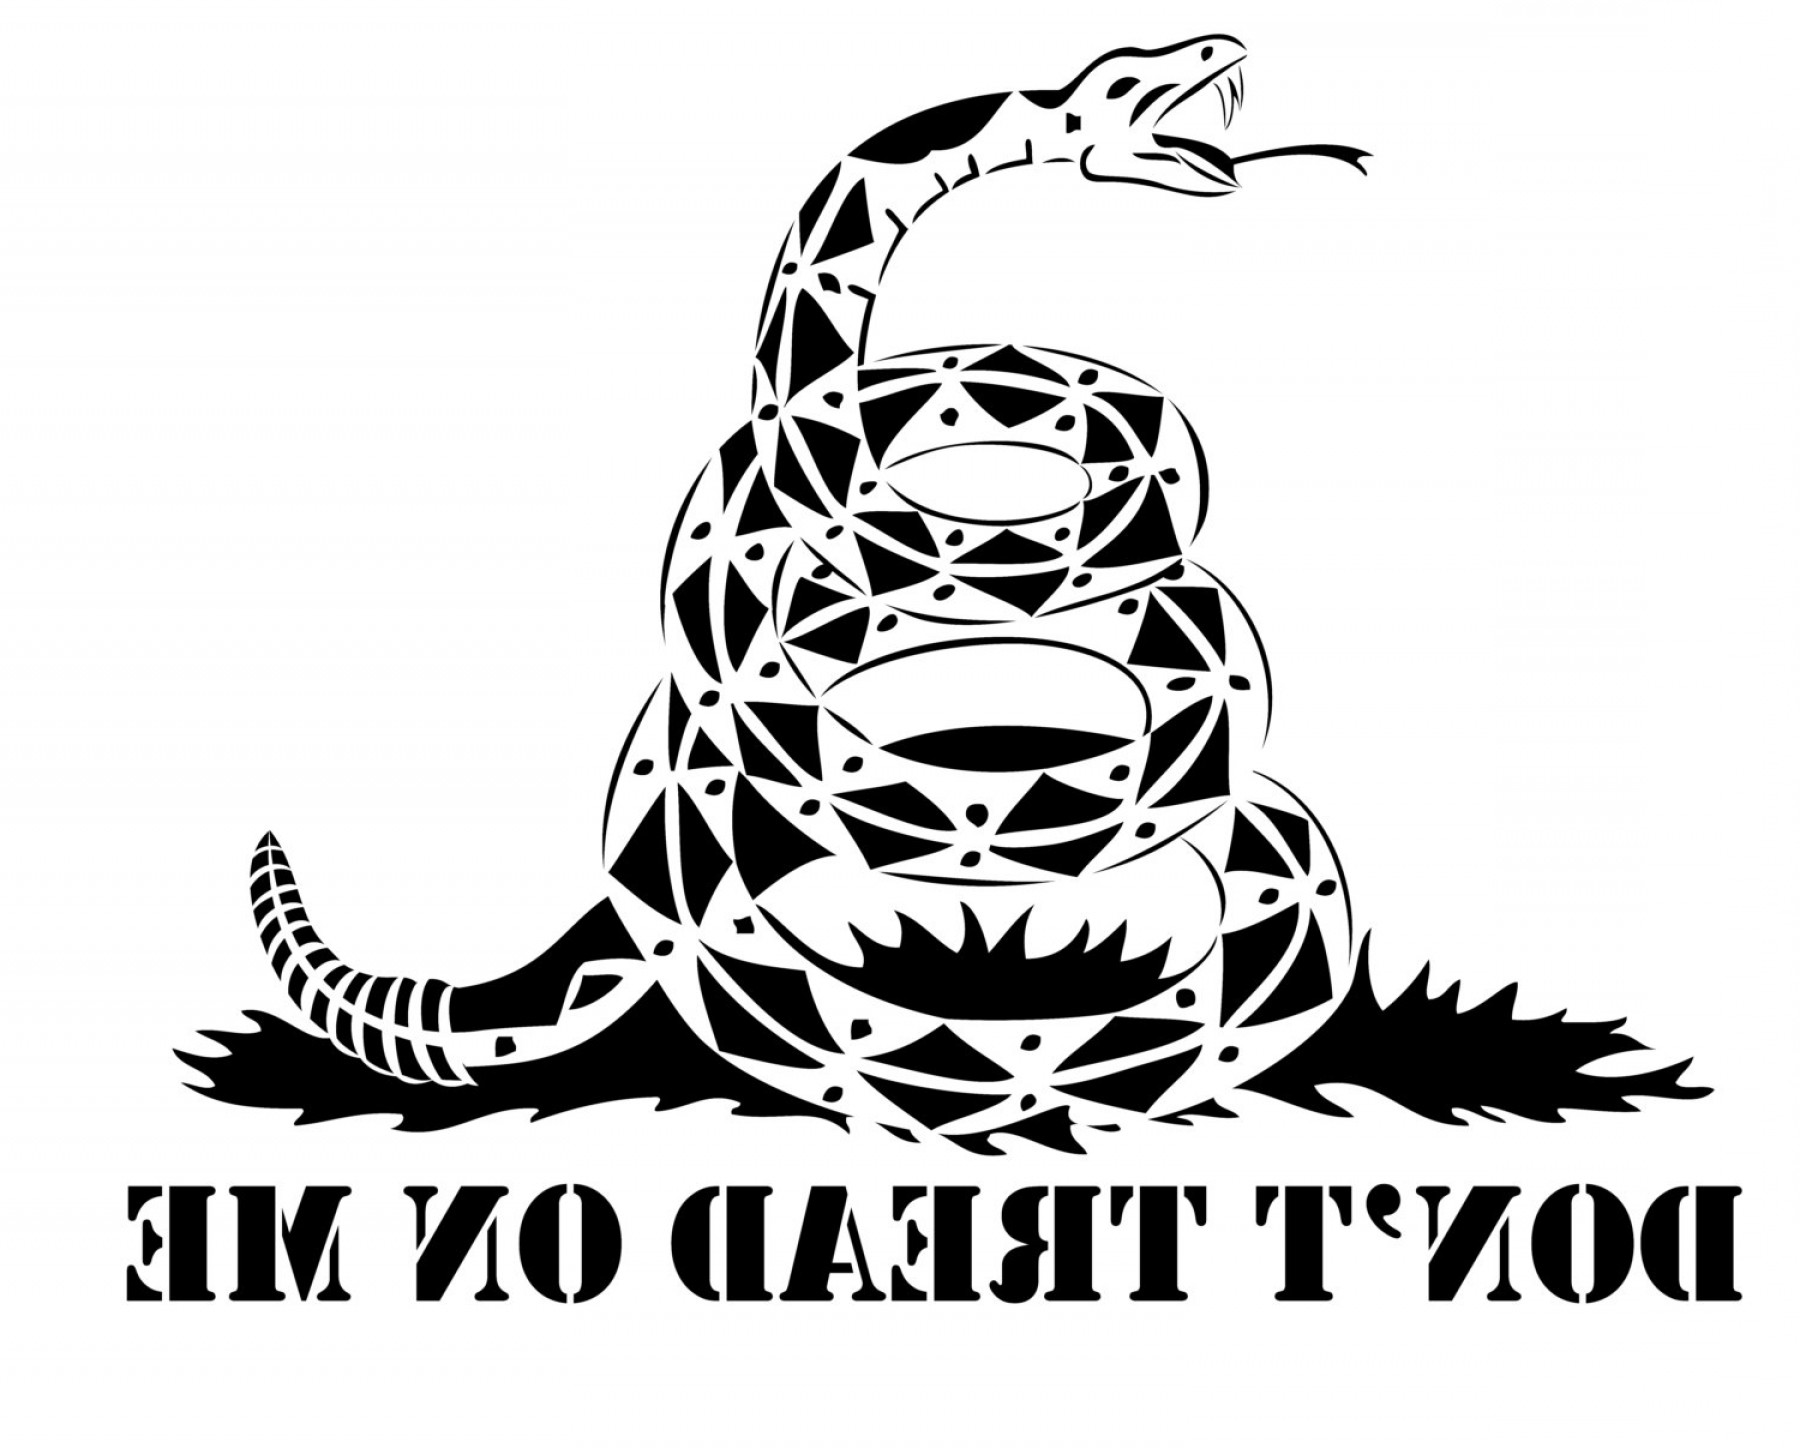 Gadsden Flag Vector Art: High Heat Dont Tread On Me Snake Vinyl